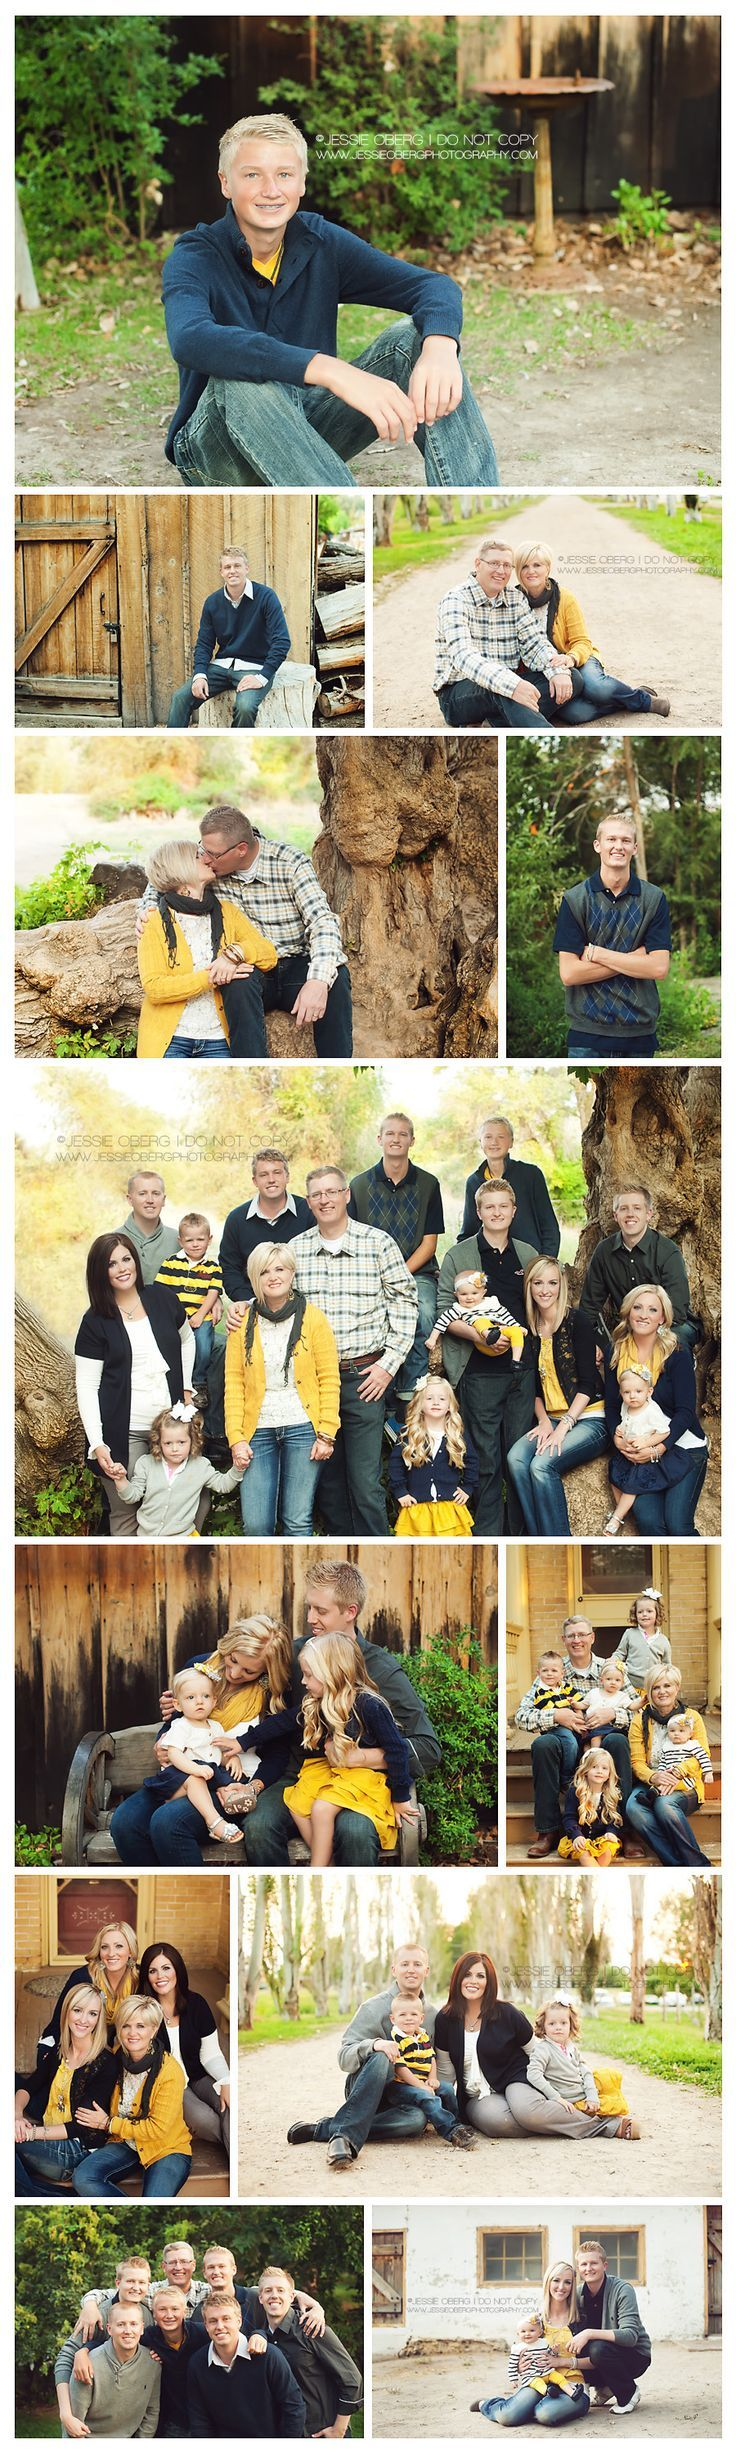 example of color pop in group photos...a great alternative to white ts and jeans or khakis worn with navy shirts.